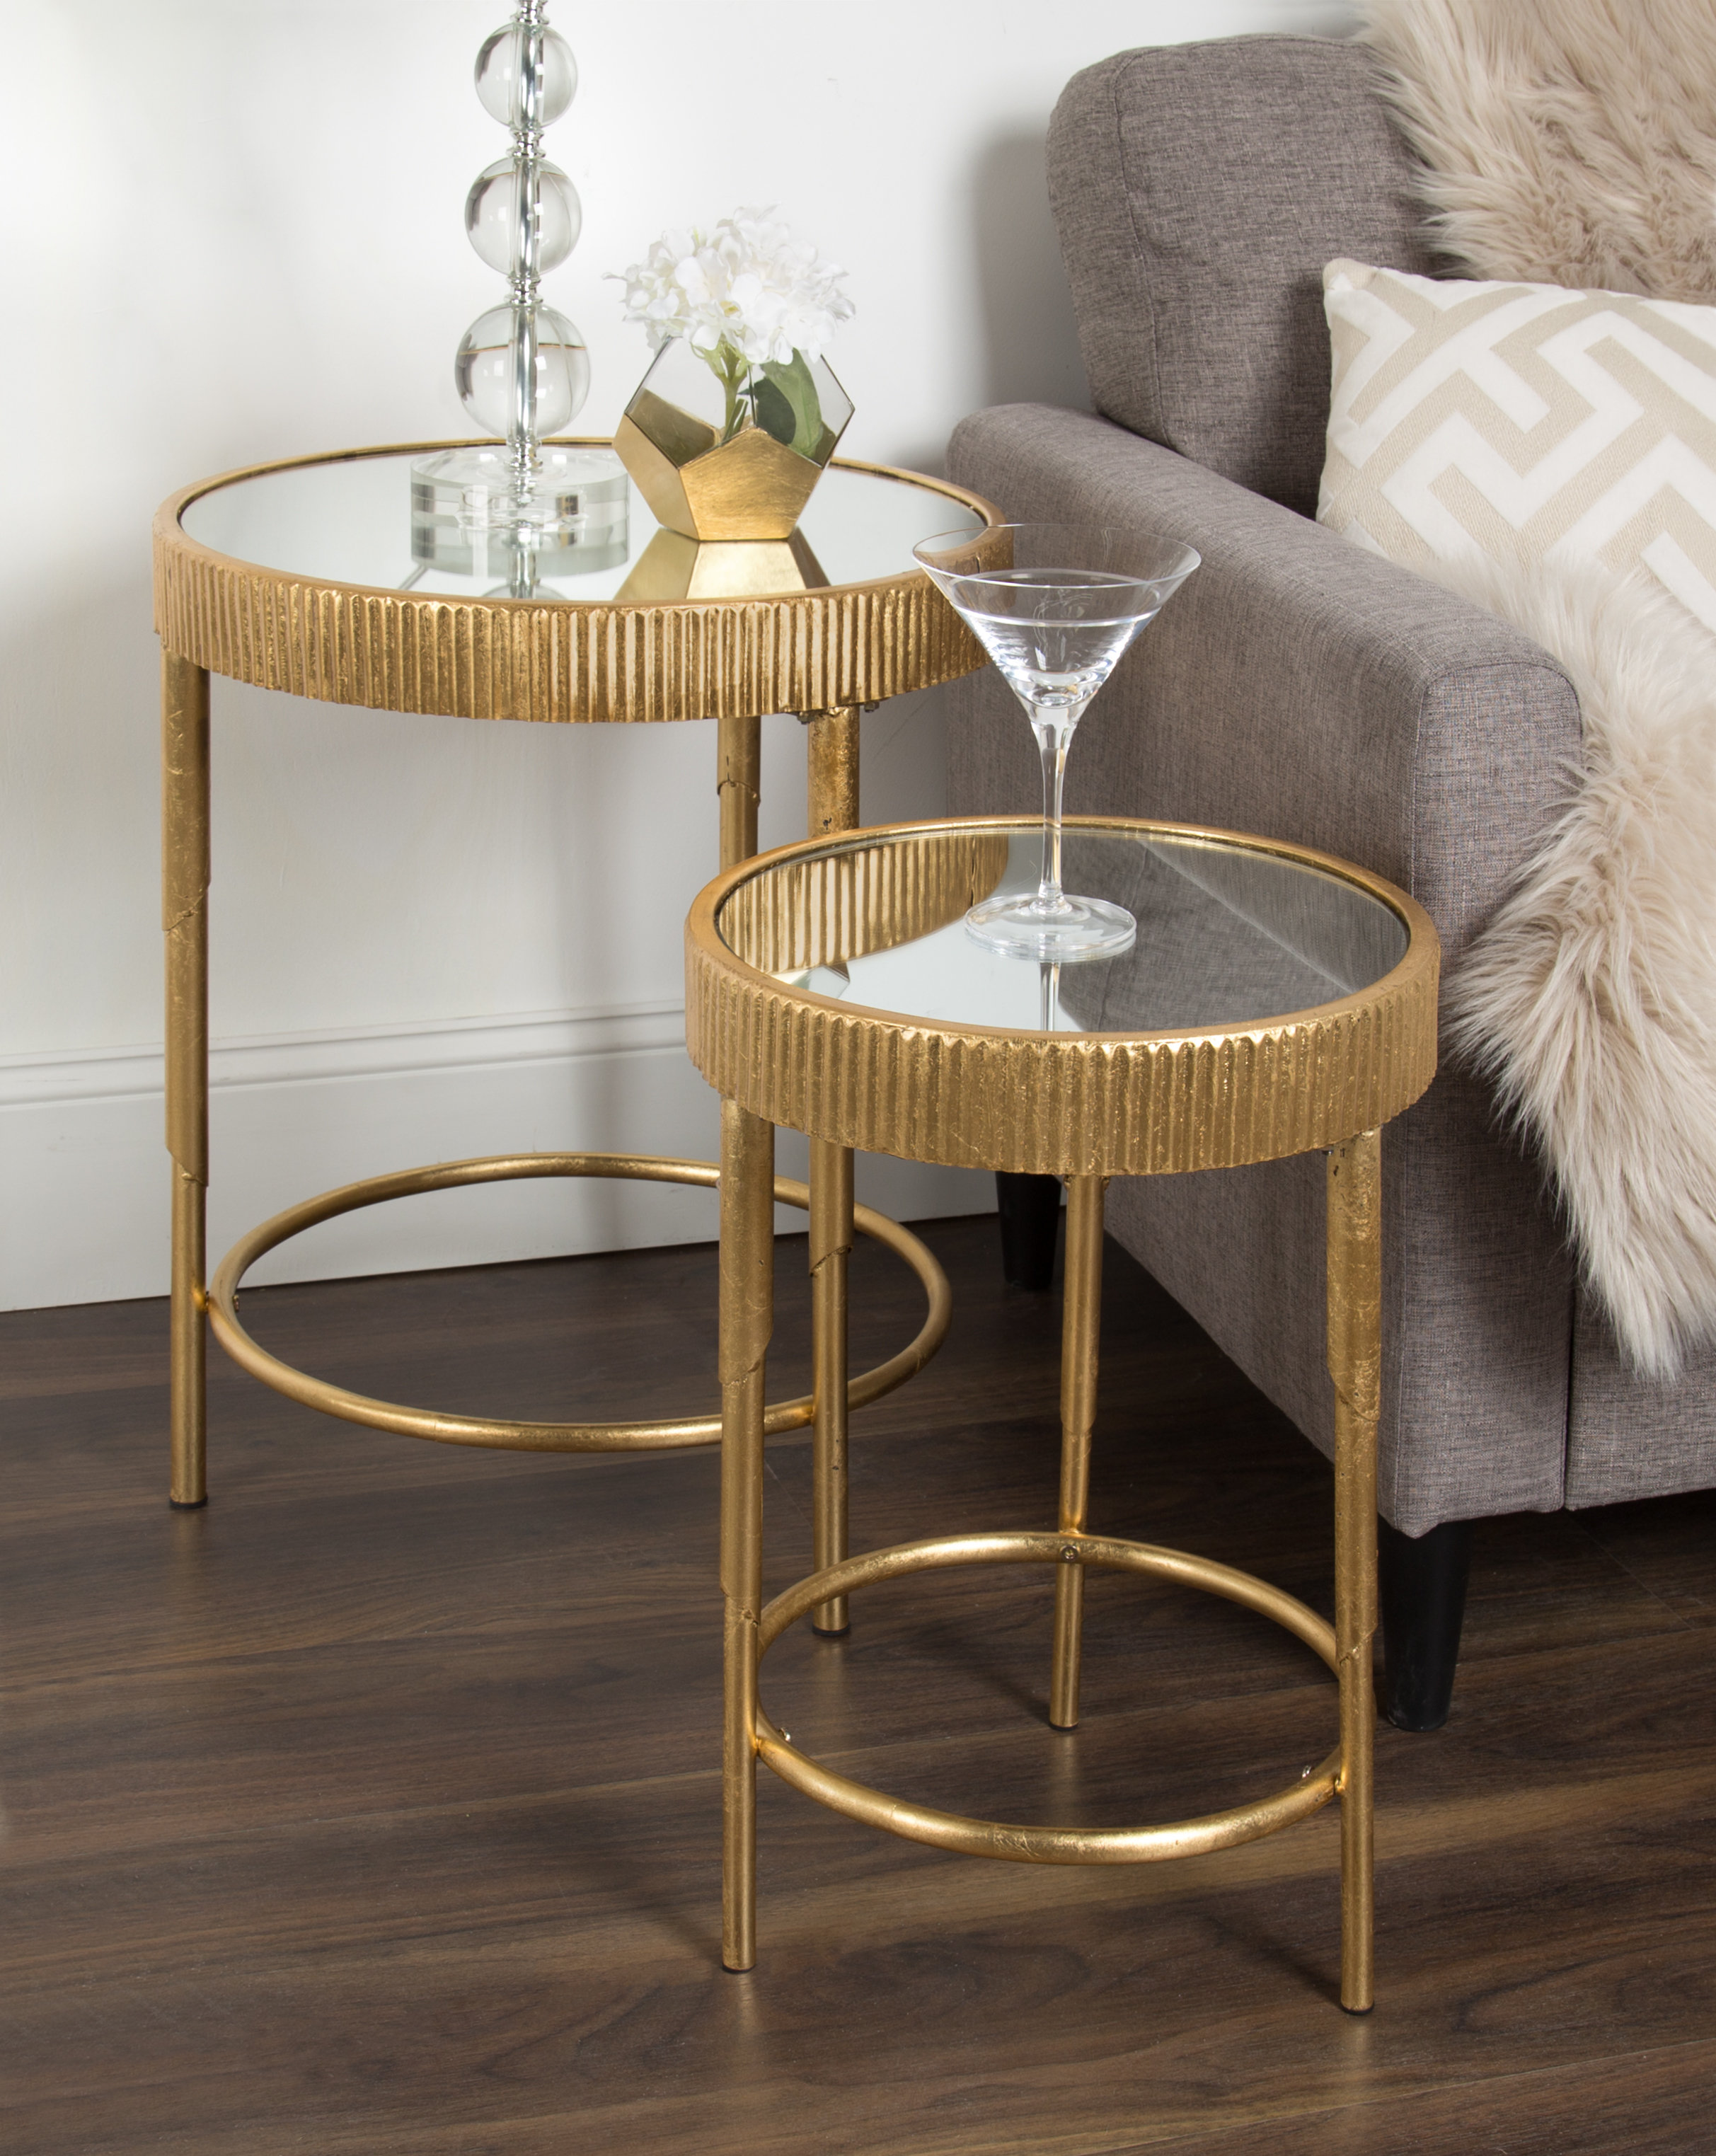 marley round piece modern accent nesting tables wood table pottery barn dining set pier chairs pine end gold and glass coffee umbrella stand base vintage tier side plastic garden